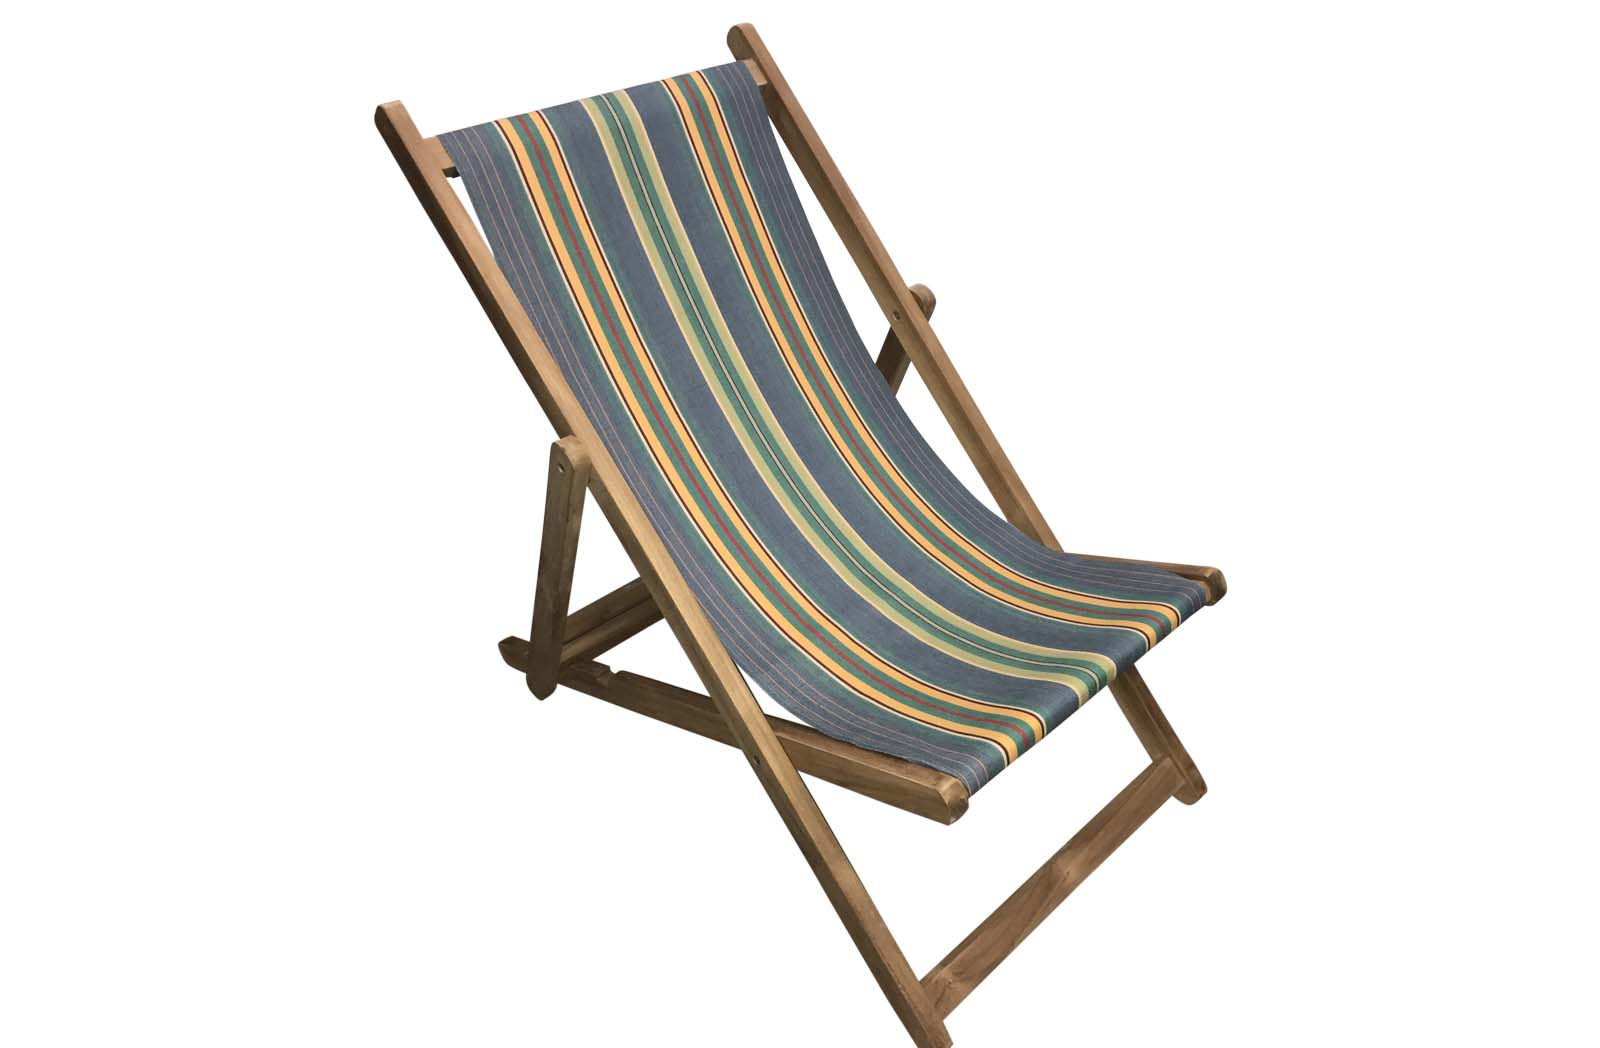 Deckchairs | Buy Folding Wooden Deck Chairs Sky blue, jade green